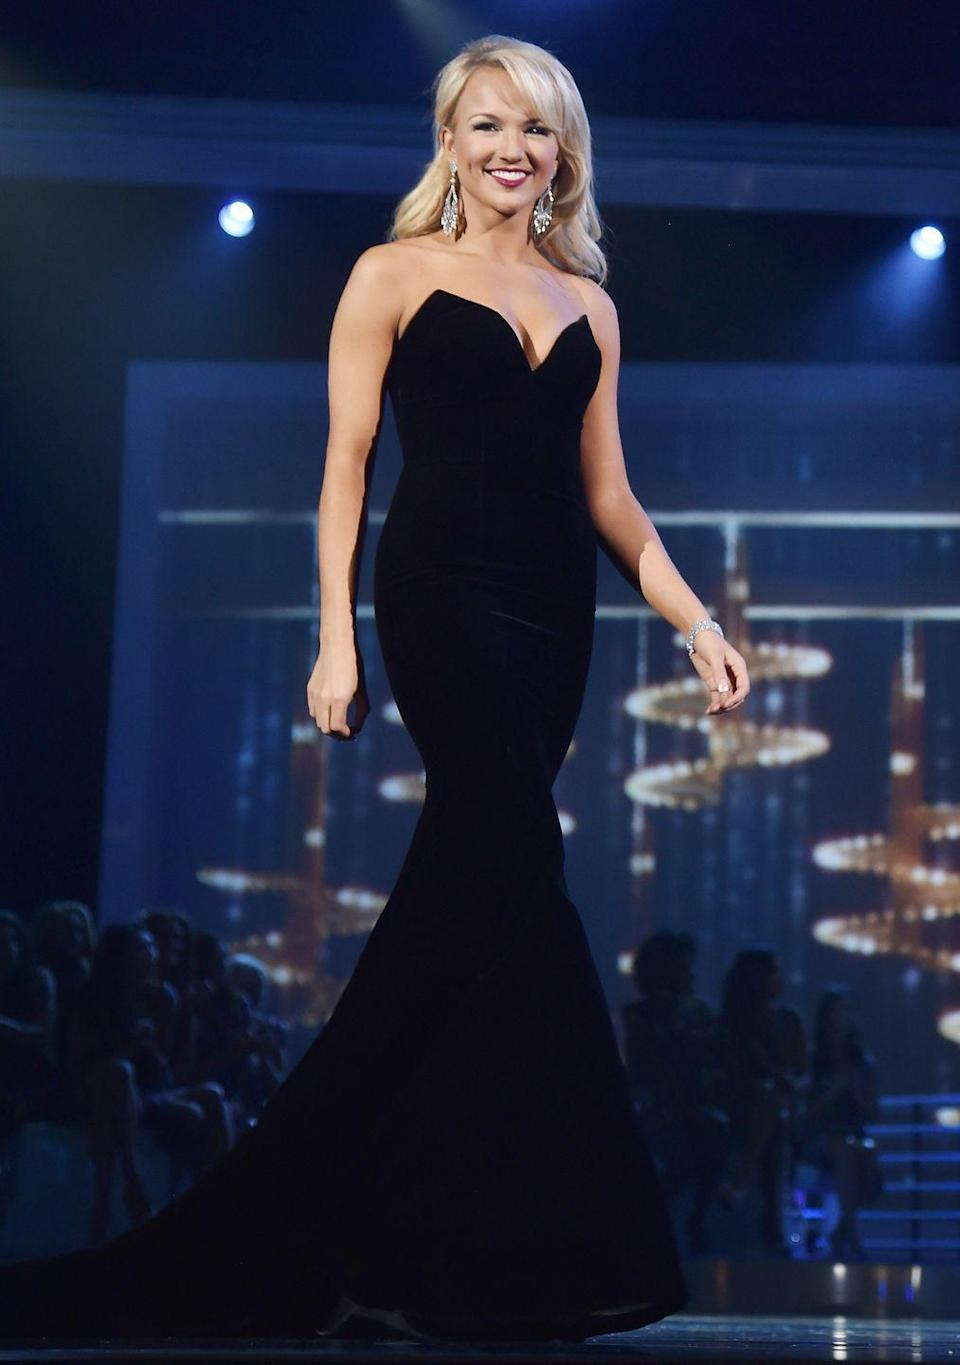 <p>Arkansas's Savvy Shields kept things simple in a black sweetheart neck gown and statement earrings to win the 2017 pageant.</p>